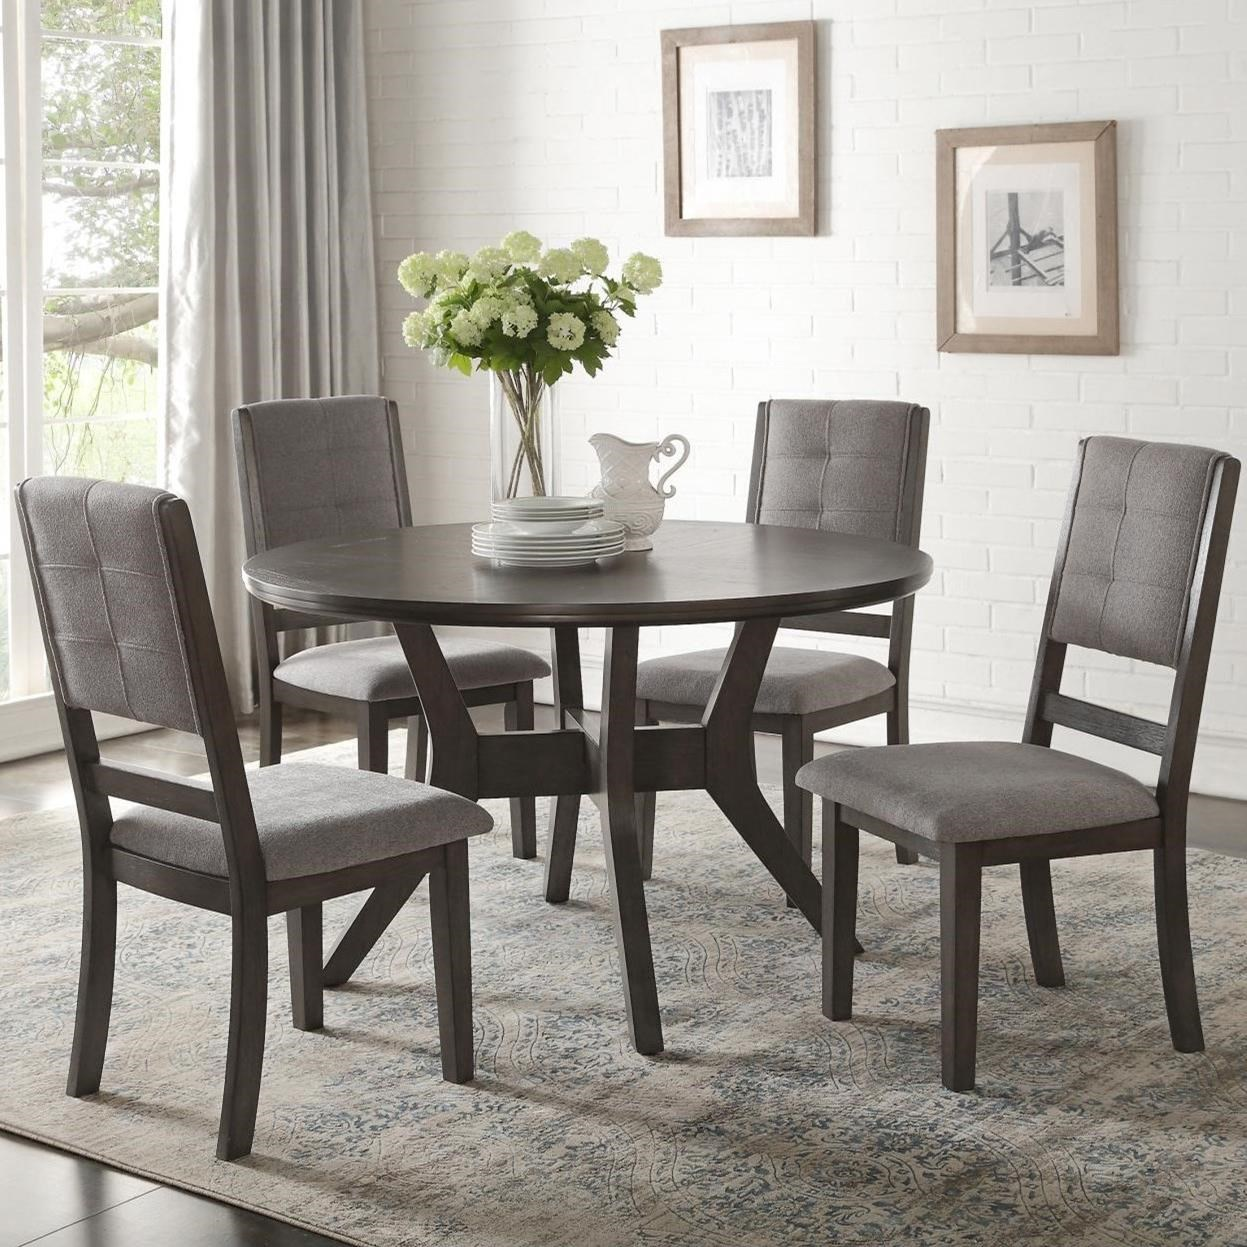 Rooms To Go Dining Room Set: Homelegance Nisky Transitional Five Piece Chair And Table